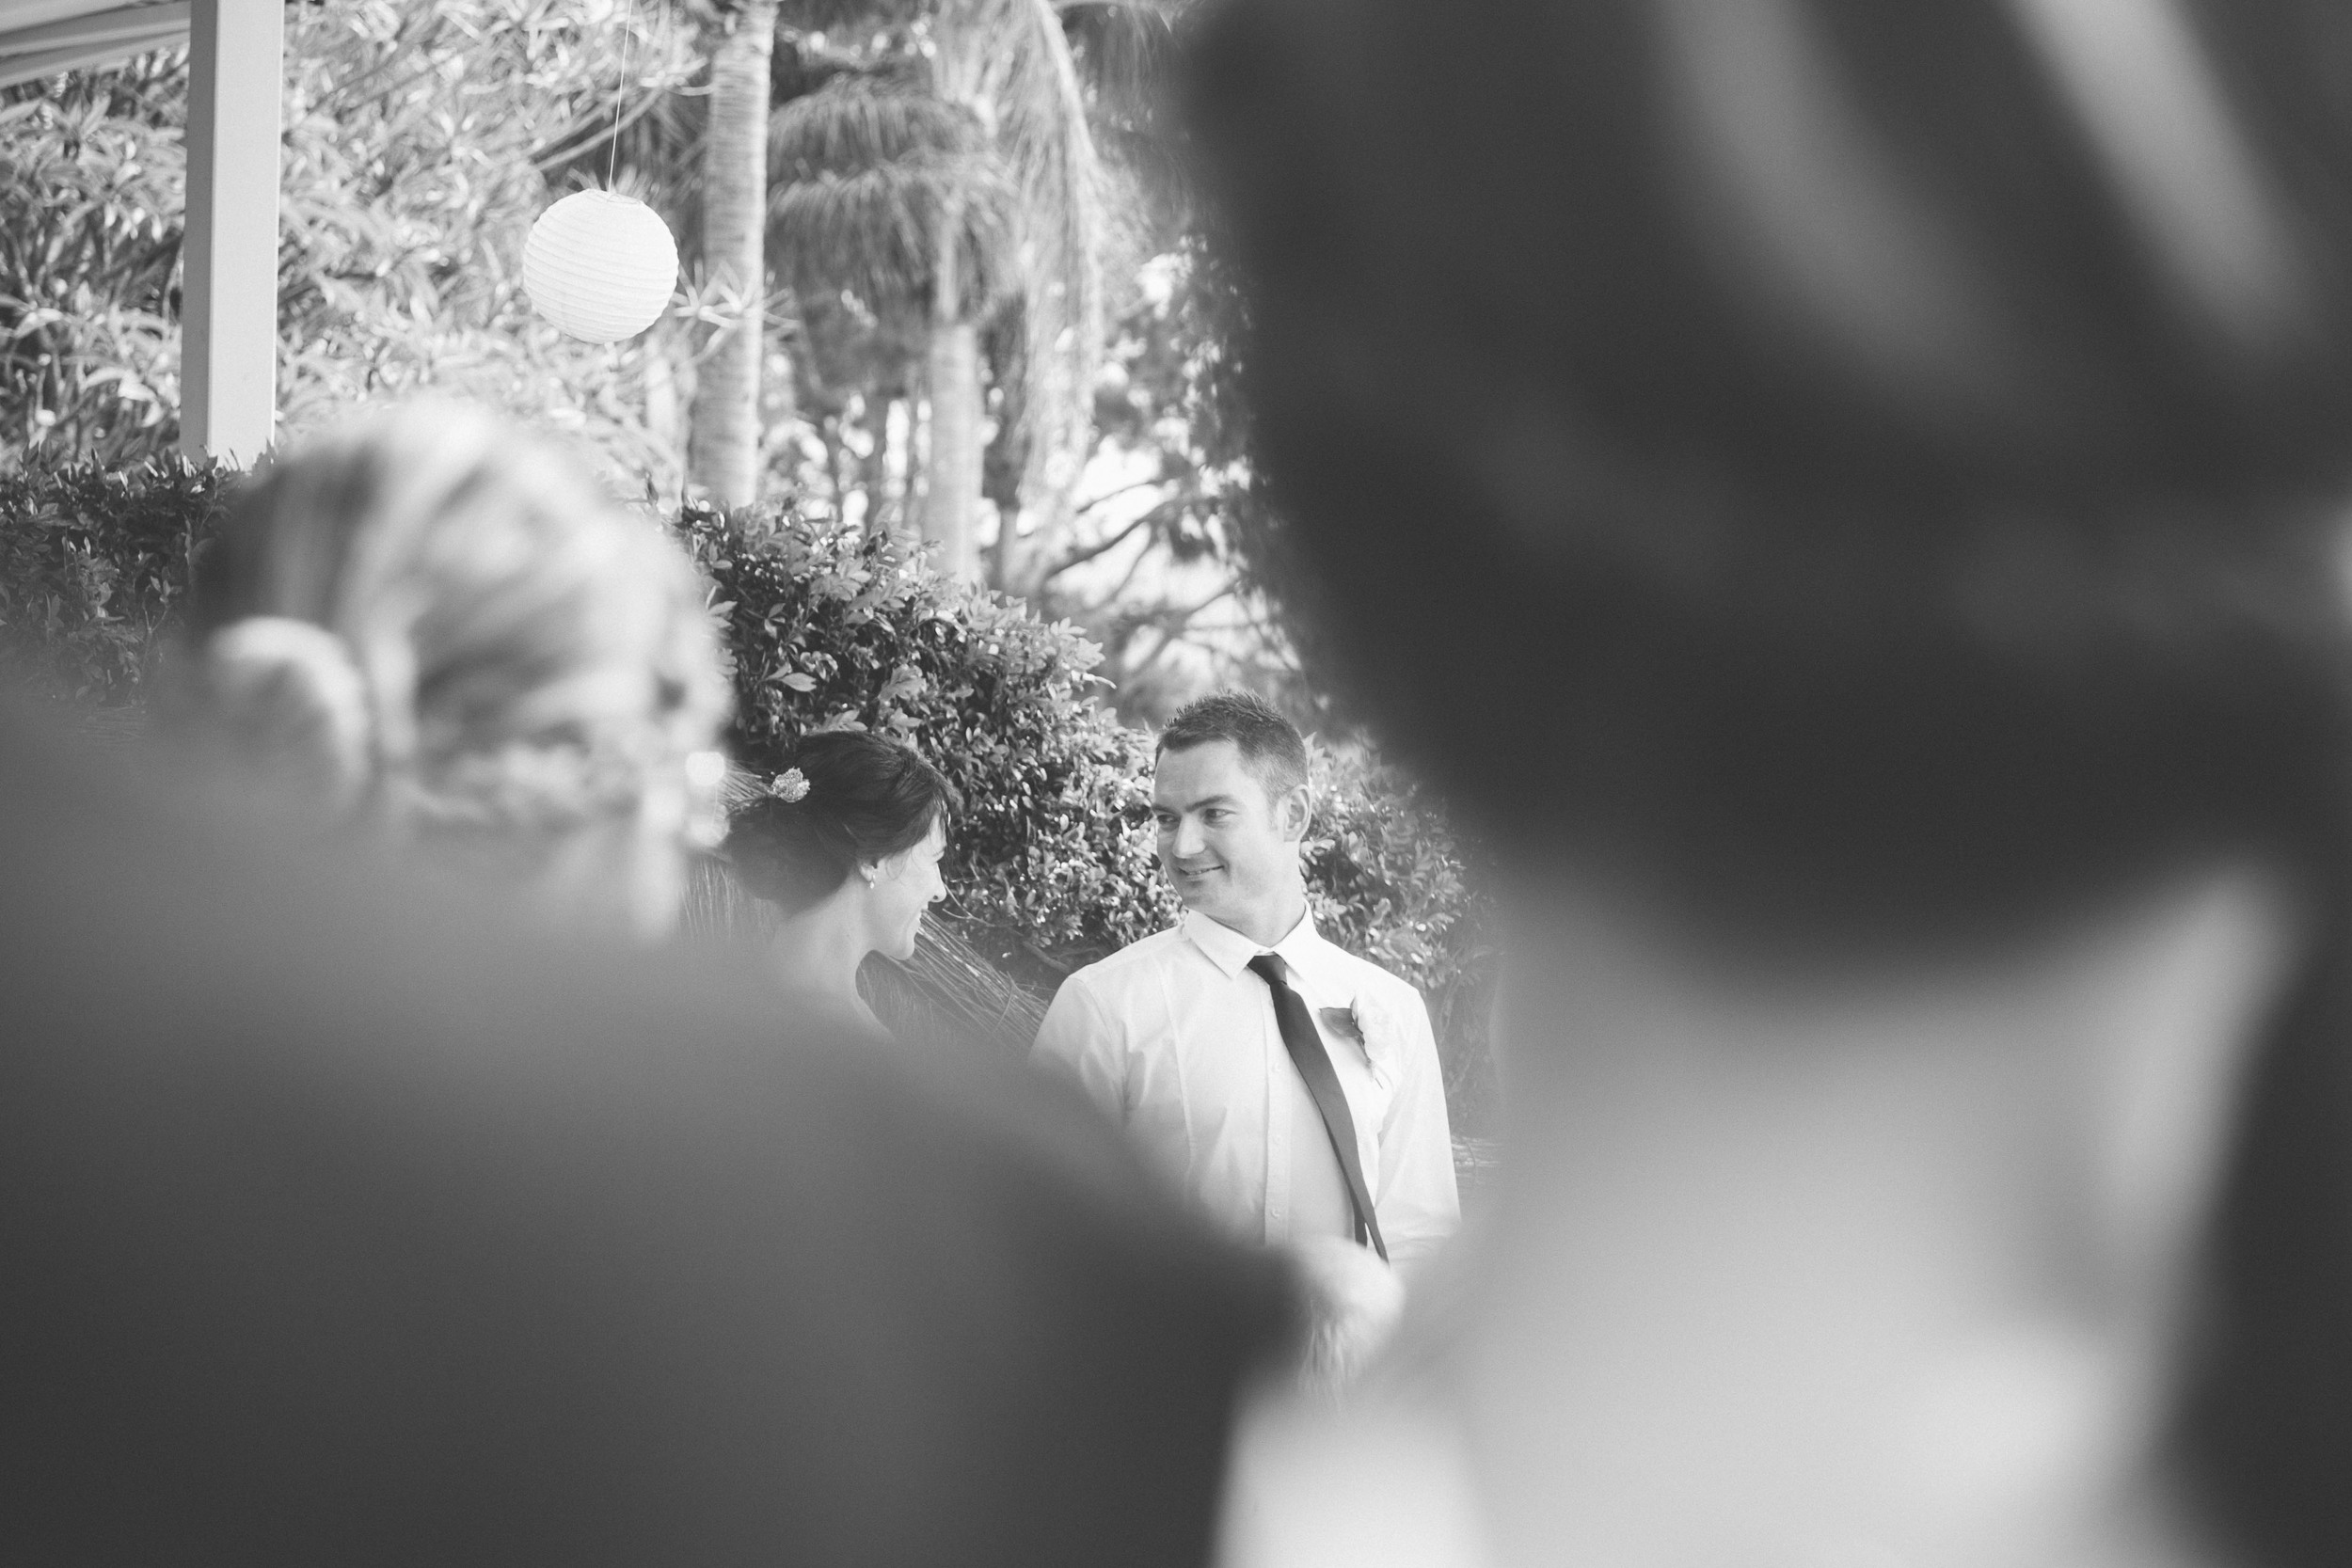 Maddy and Dan wedding, The Boathouse Palm Beach by Milton Gan Photography 058.jpg